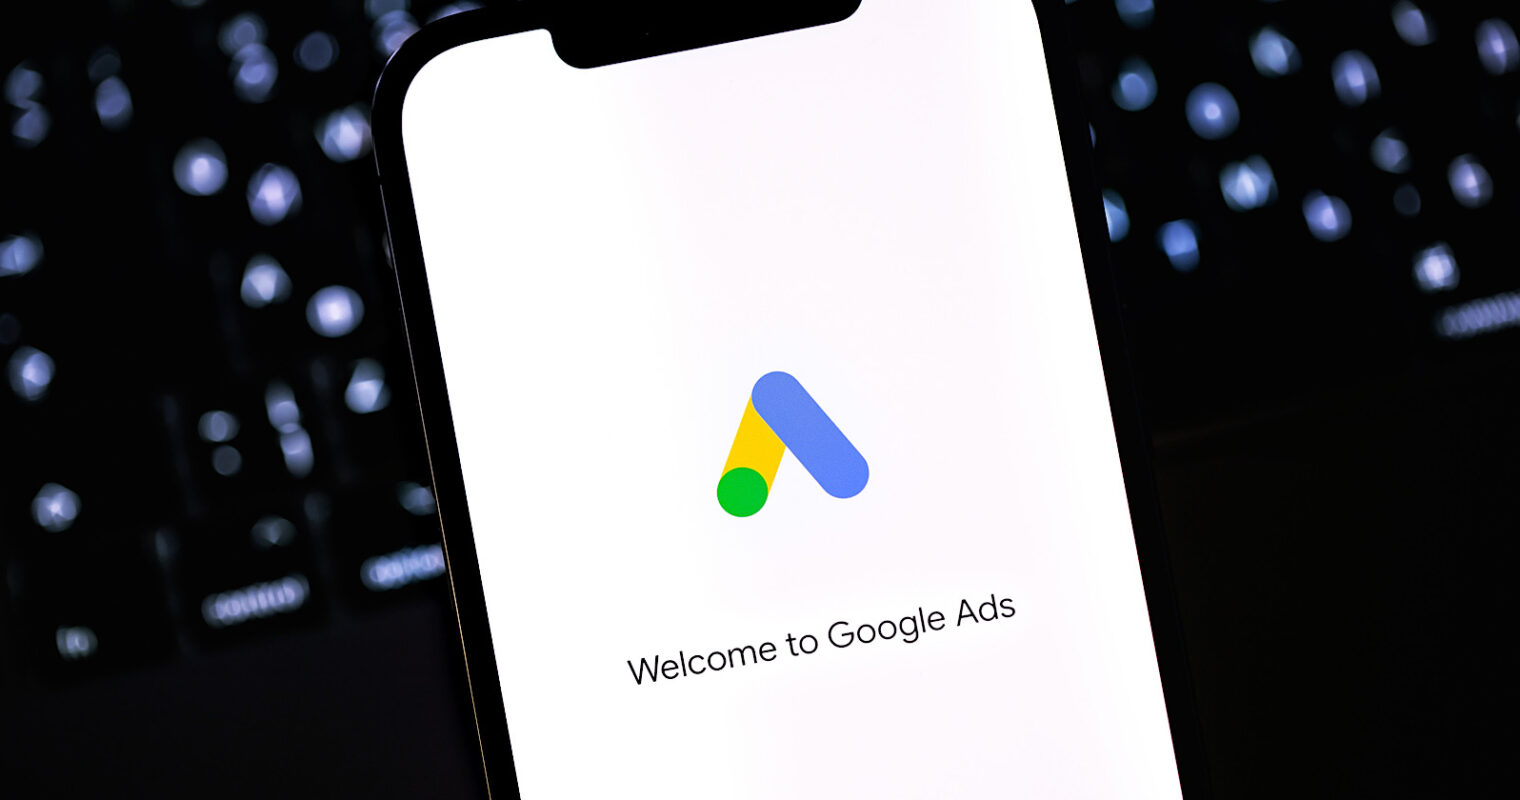 Google Ads App Gets New Features After 3 Months of No Updates